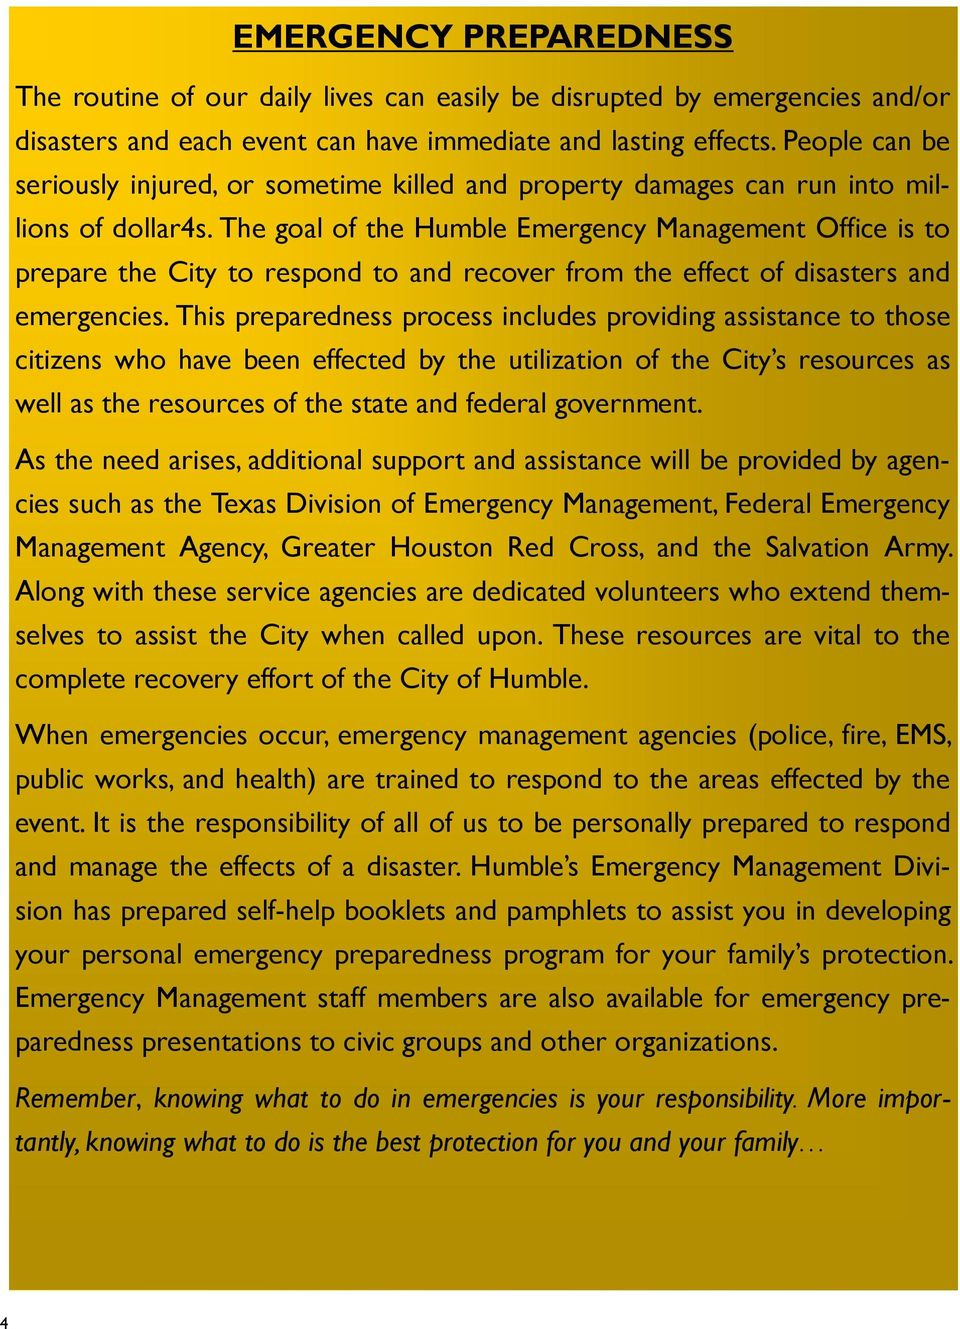 The goal of the Humble Emergency Management Office is to prepare the City to respond to and recover from the effect of disasters and emergencies.